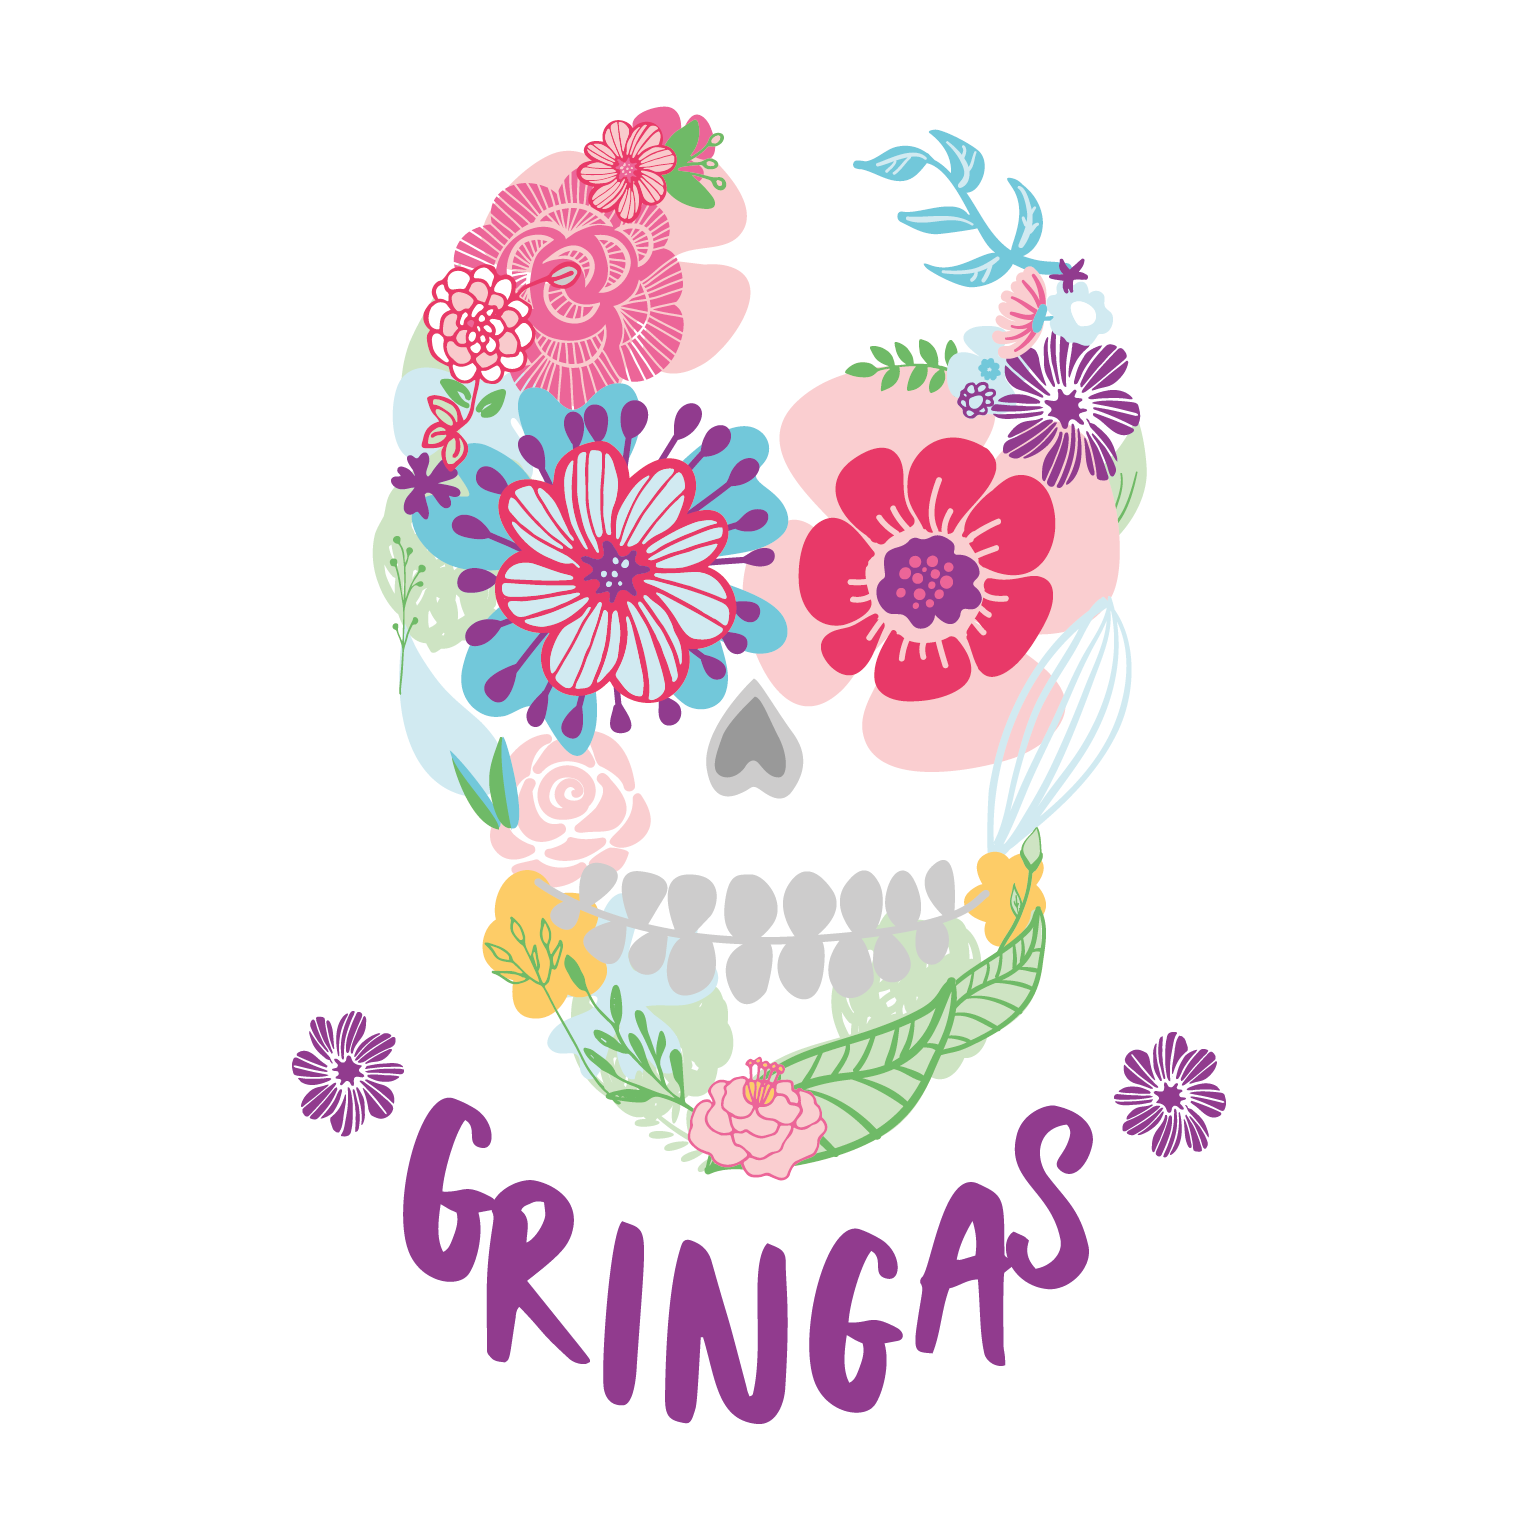 Gringas Logo Final-01.png